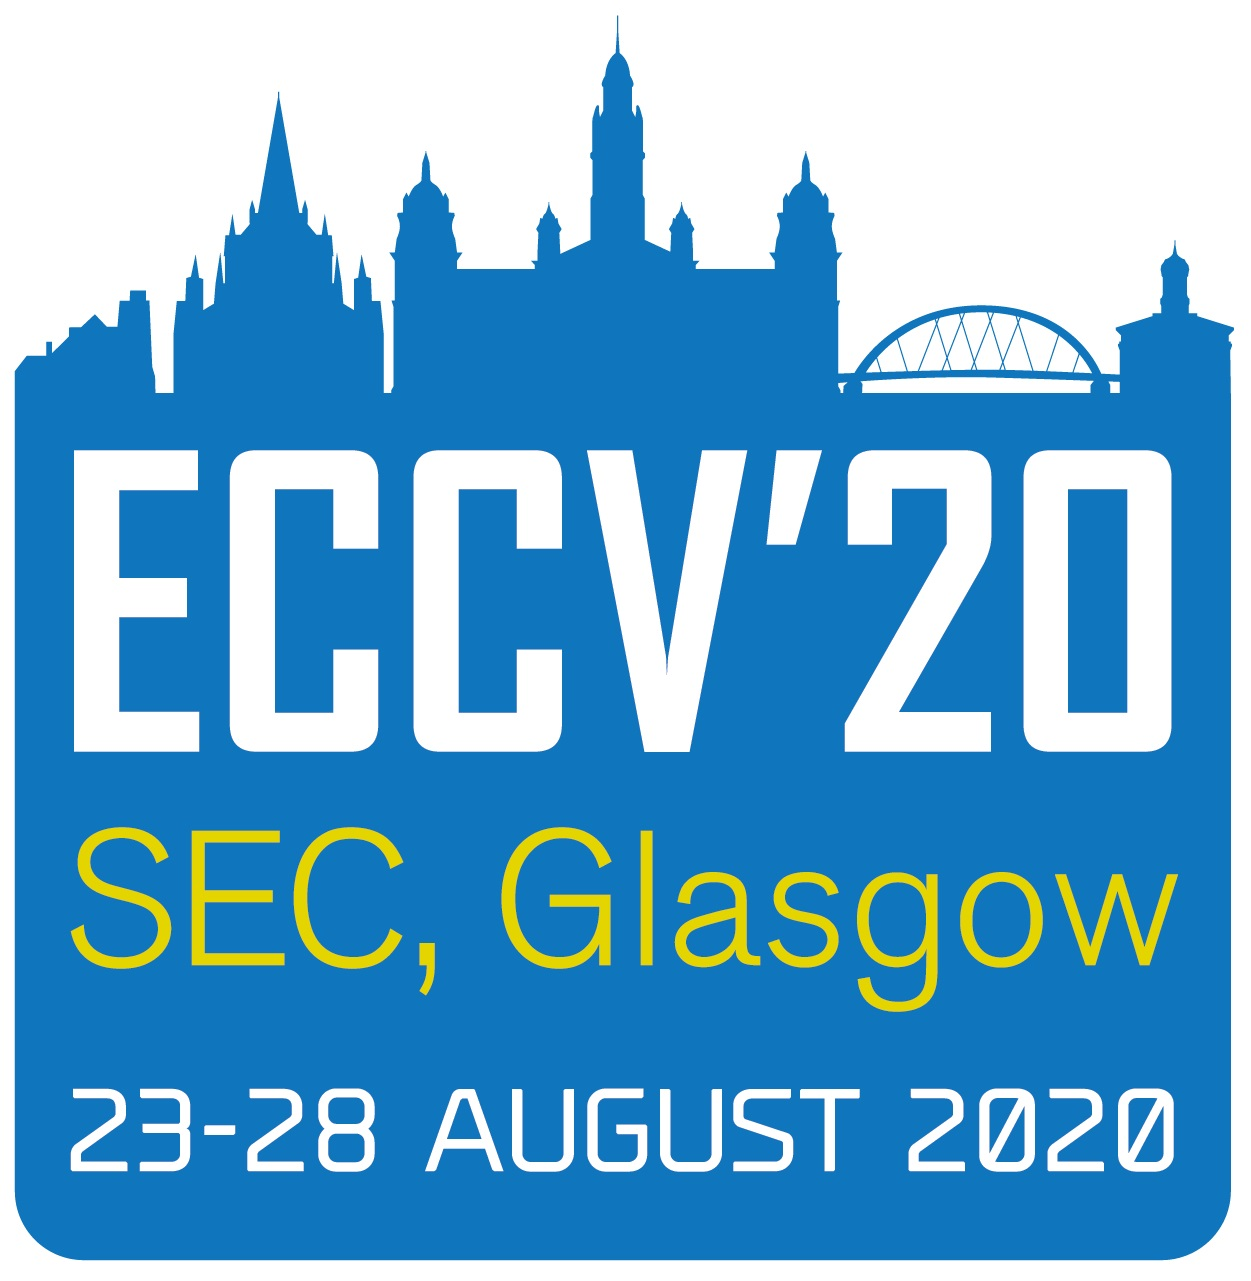 European Conference on Computer Vision 2020